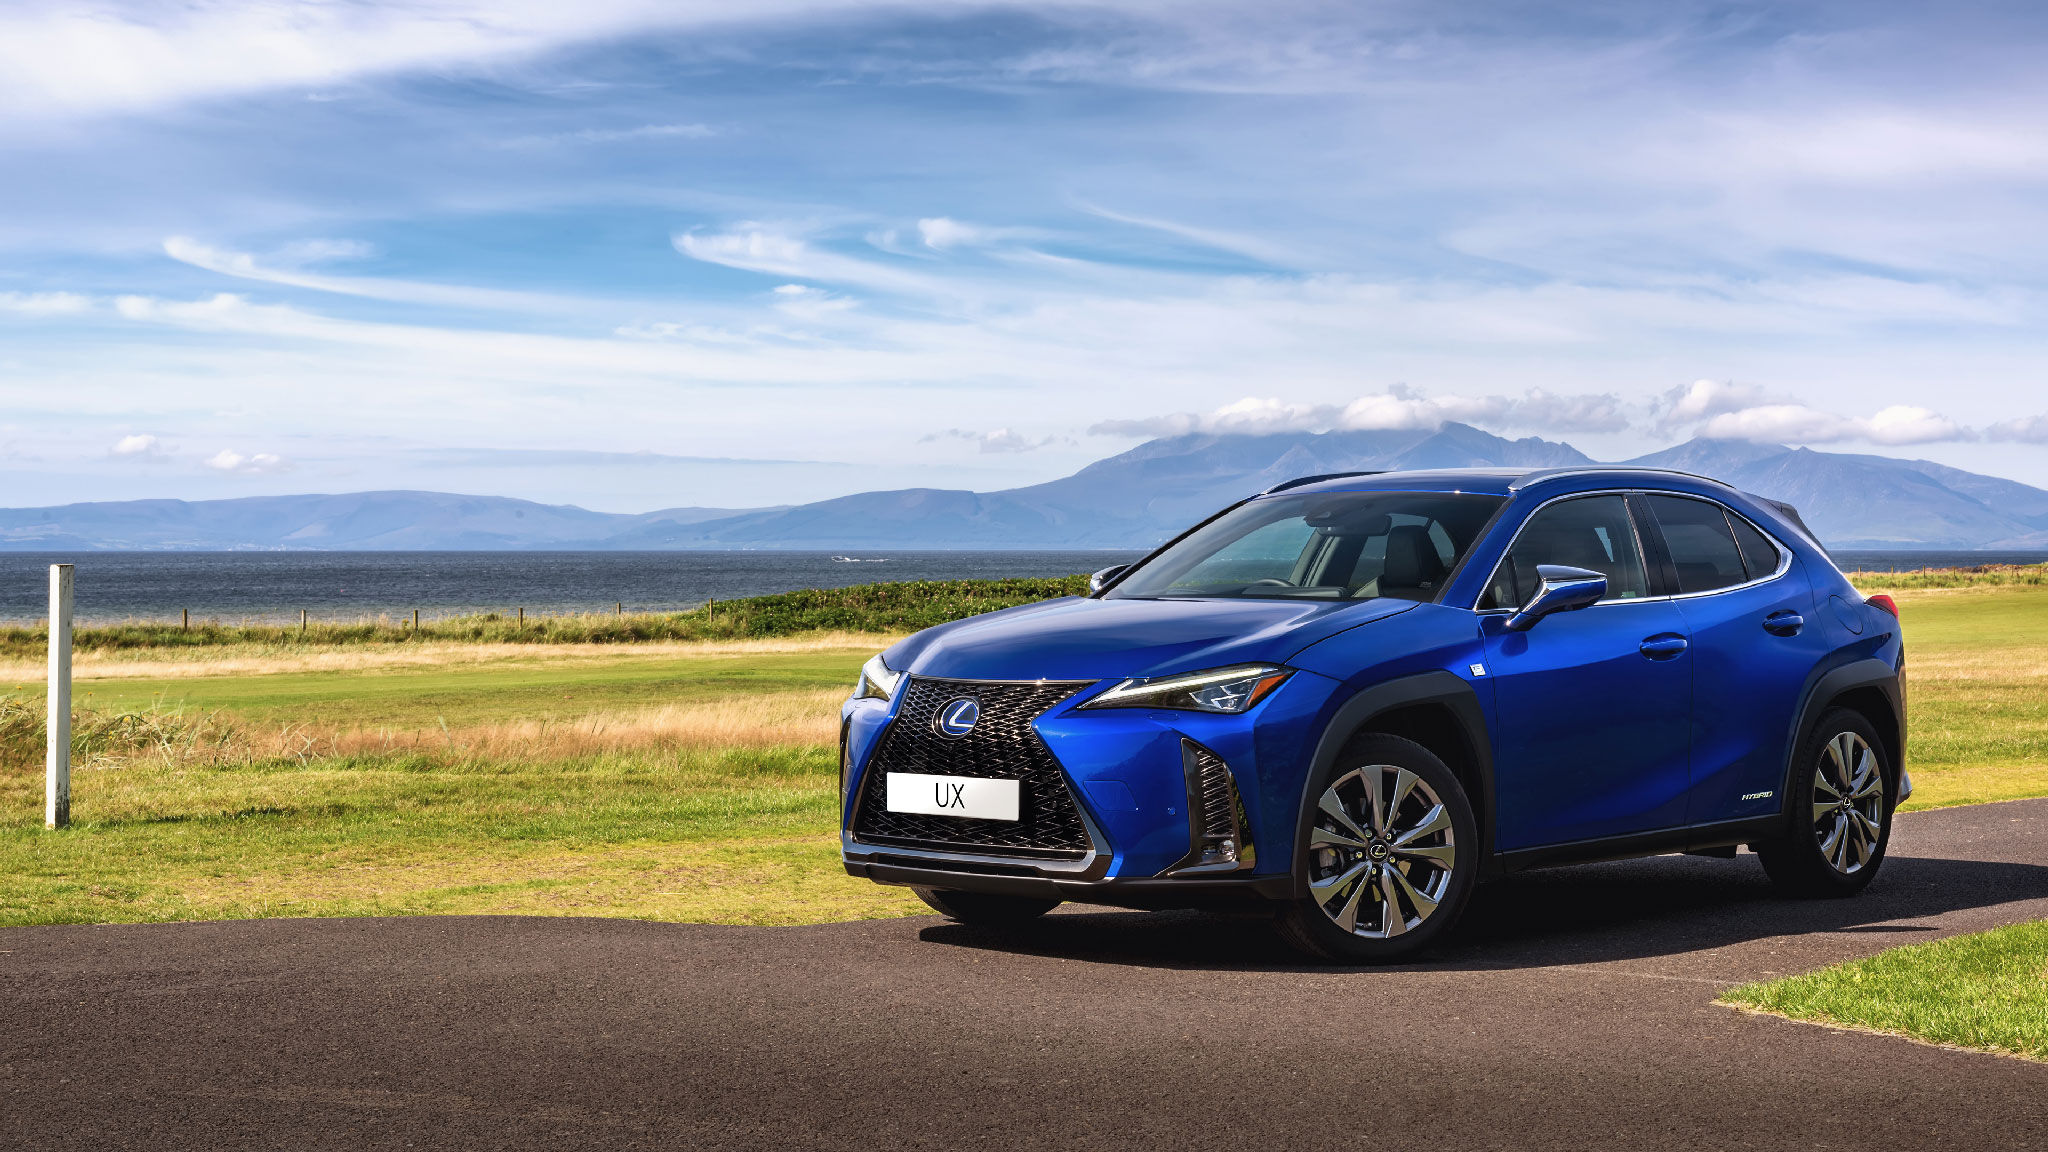 Lexus UX Hybrid & Electric Photography by Dean Wright Photography